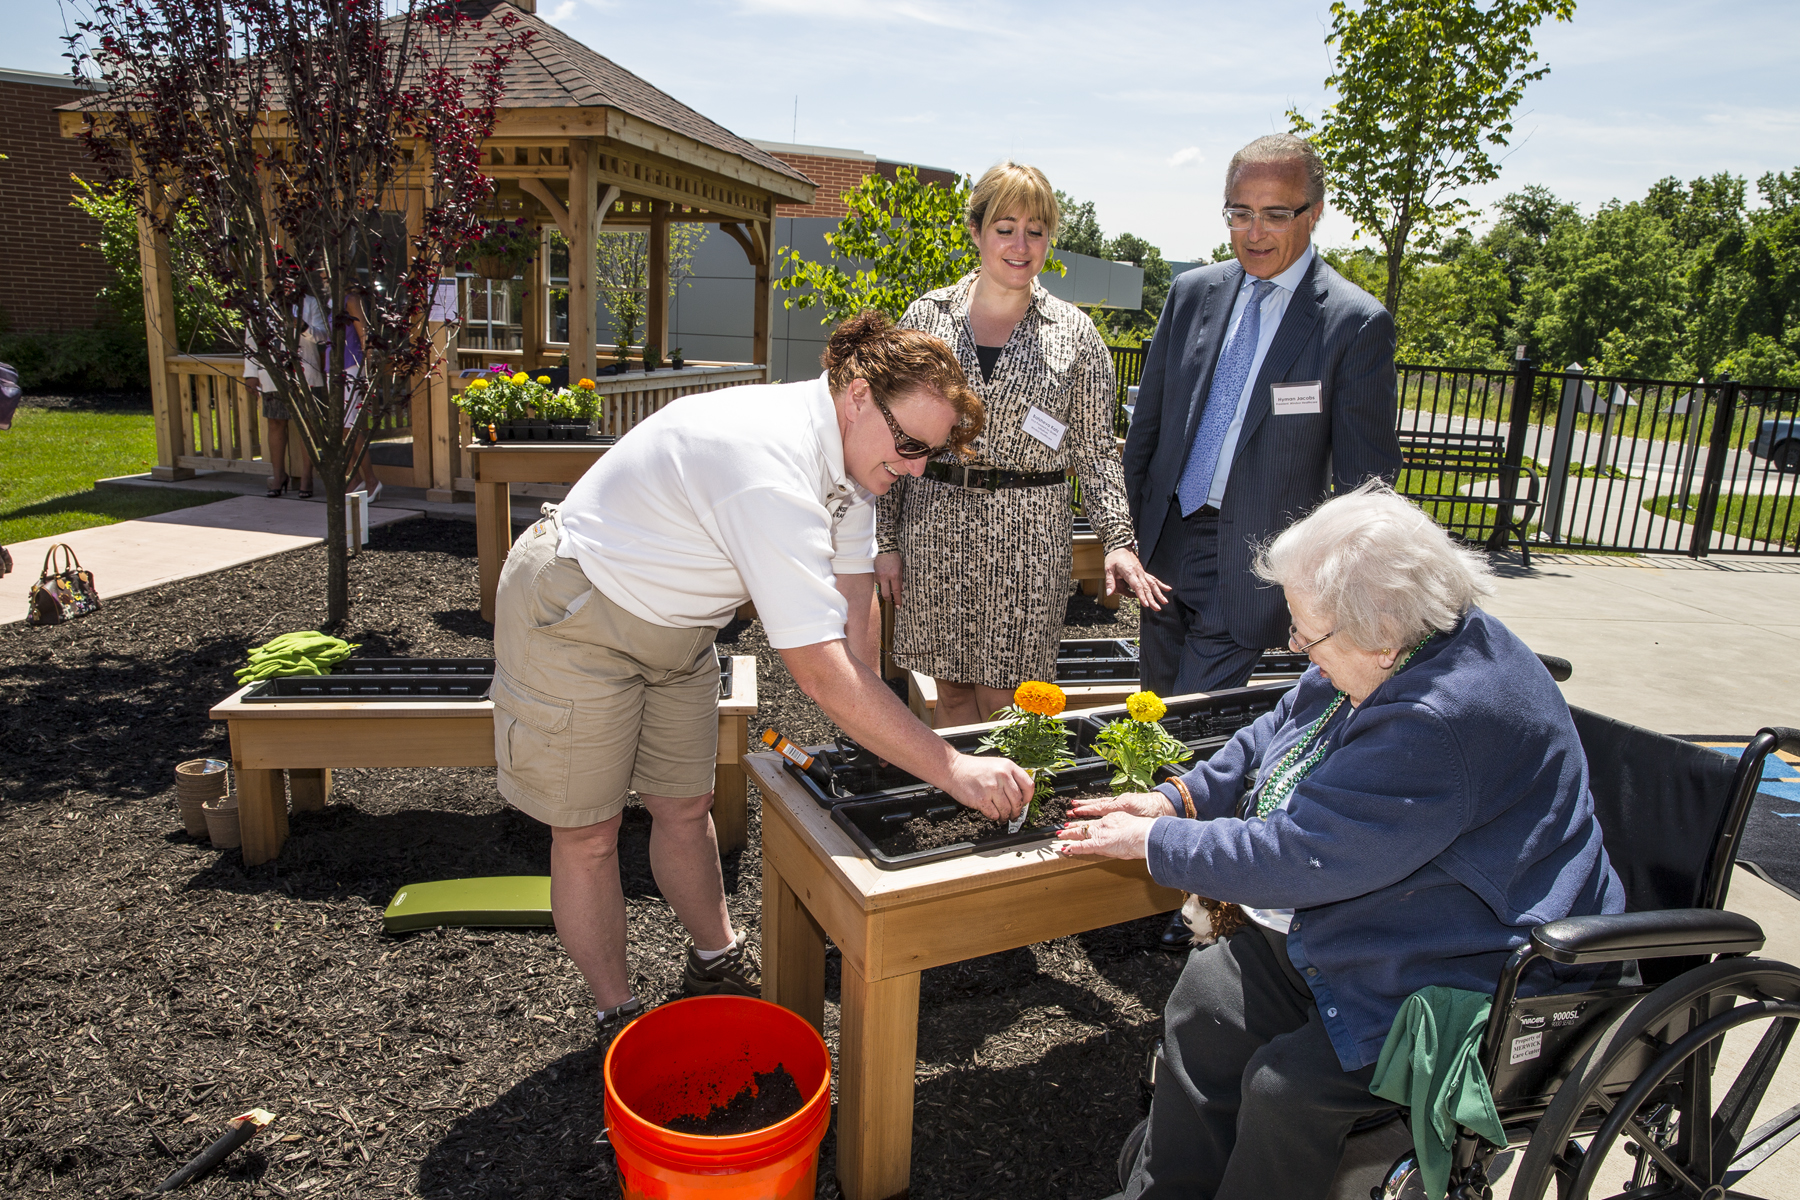 windsor healthcare 39 s unique therapy garden recognized and discussed at